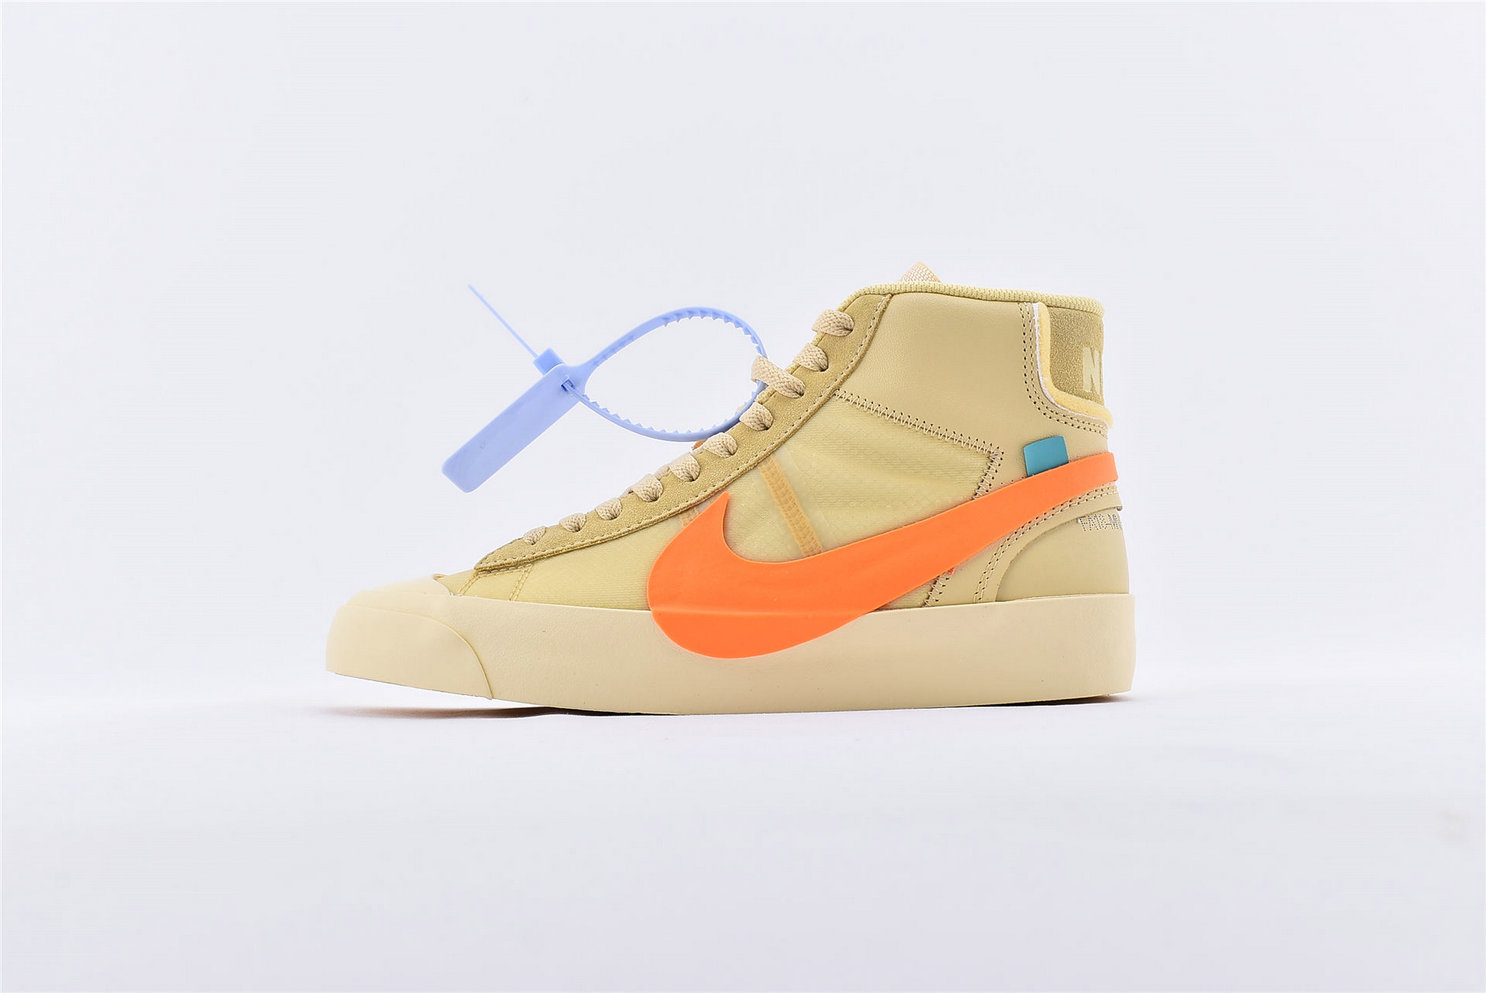 Where To Buy Cheap Off-White x Nike Blazer Orange SPOOKY PACK AA3832-700 On VaporMaxRunning